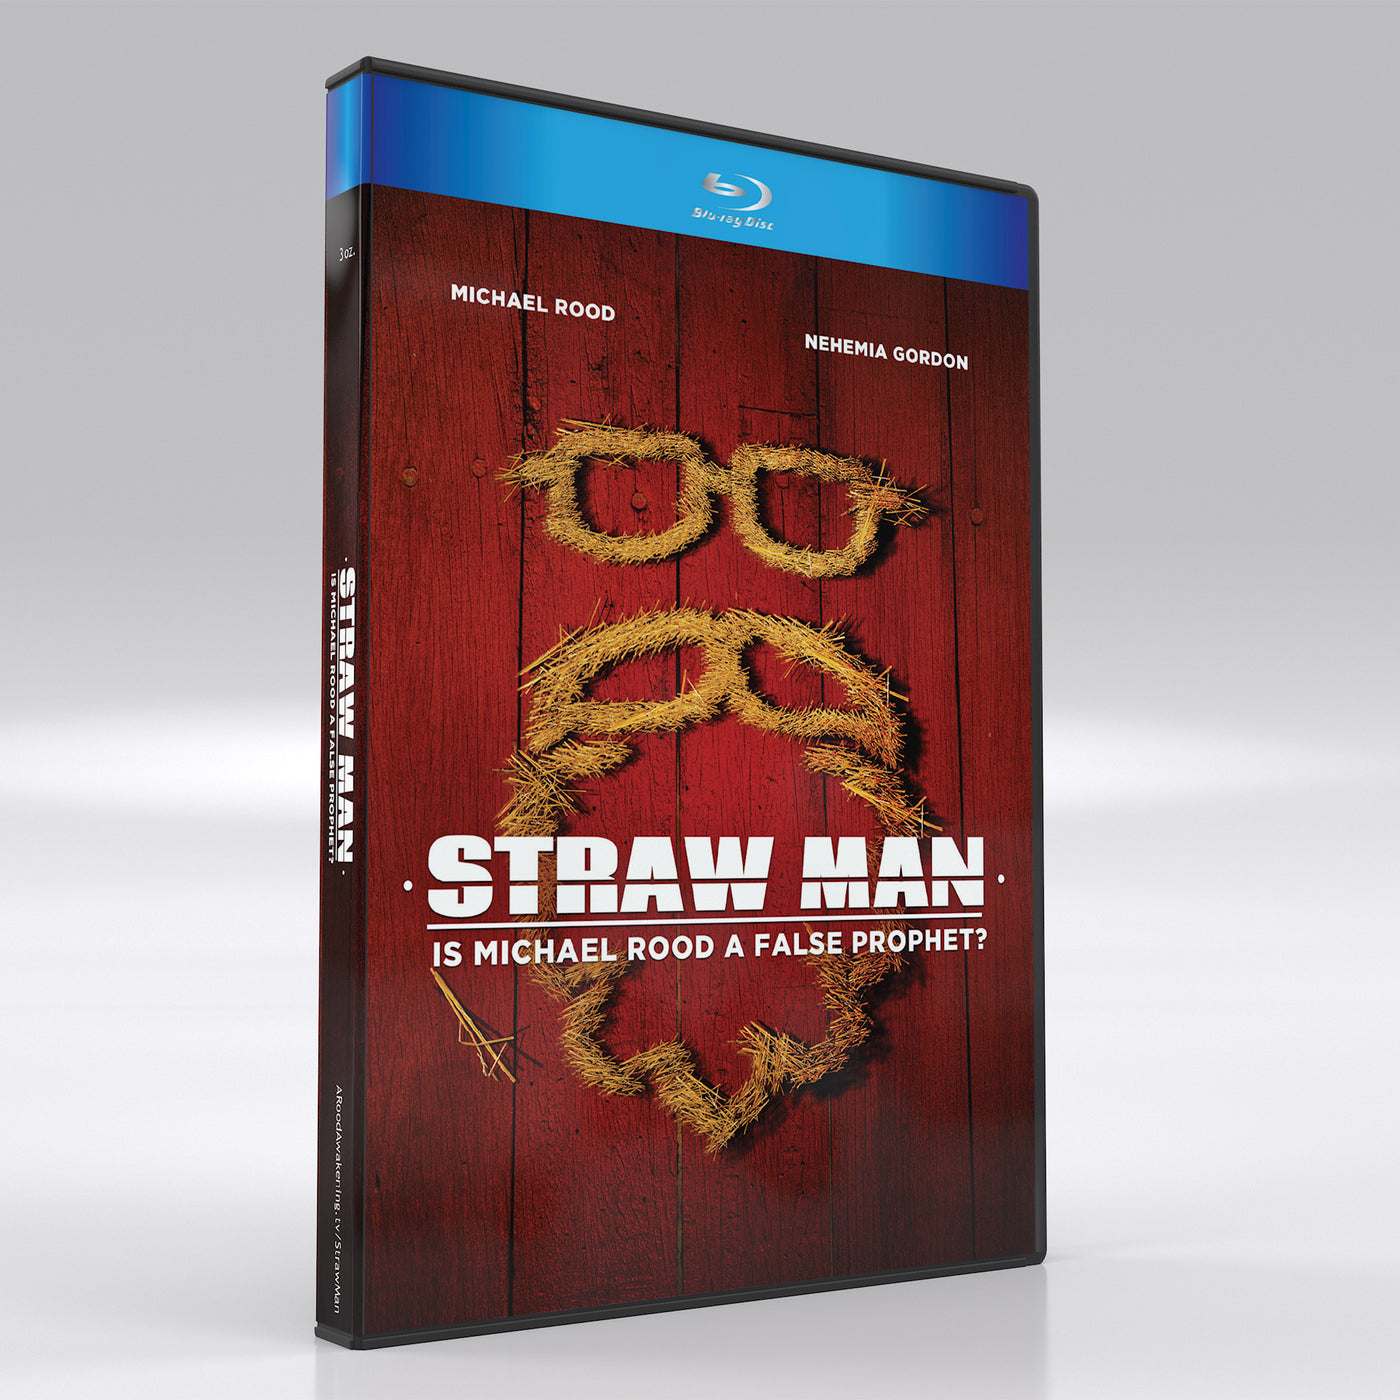 Straw Man - with Nehemia Gordon